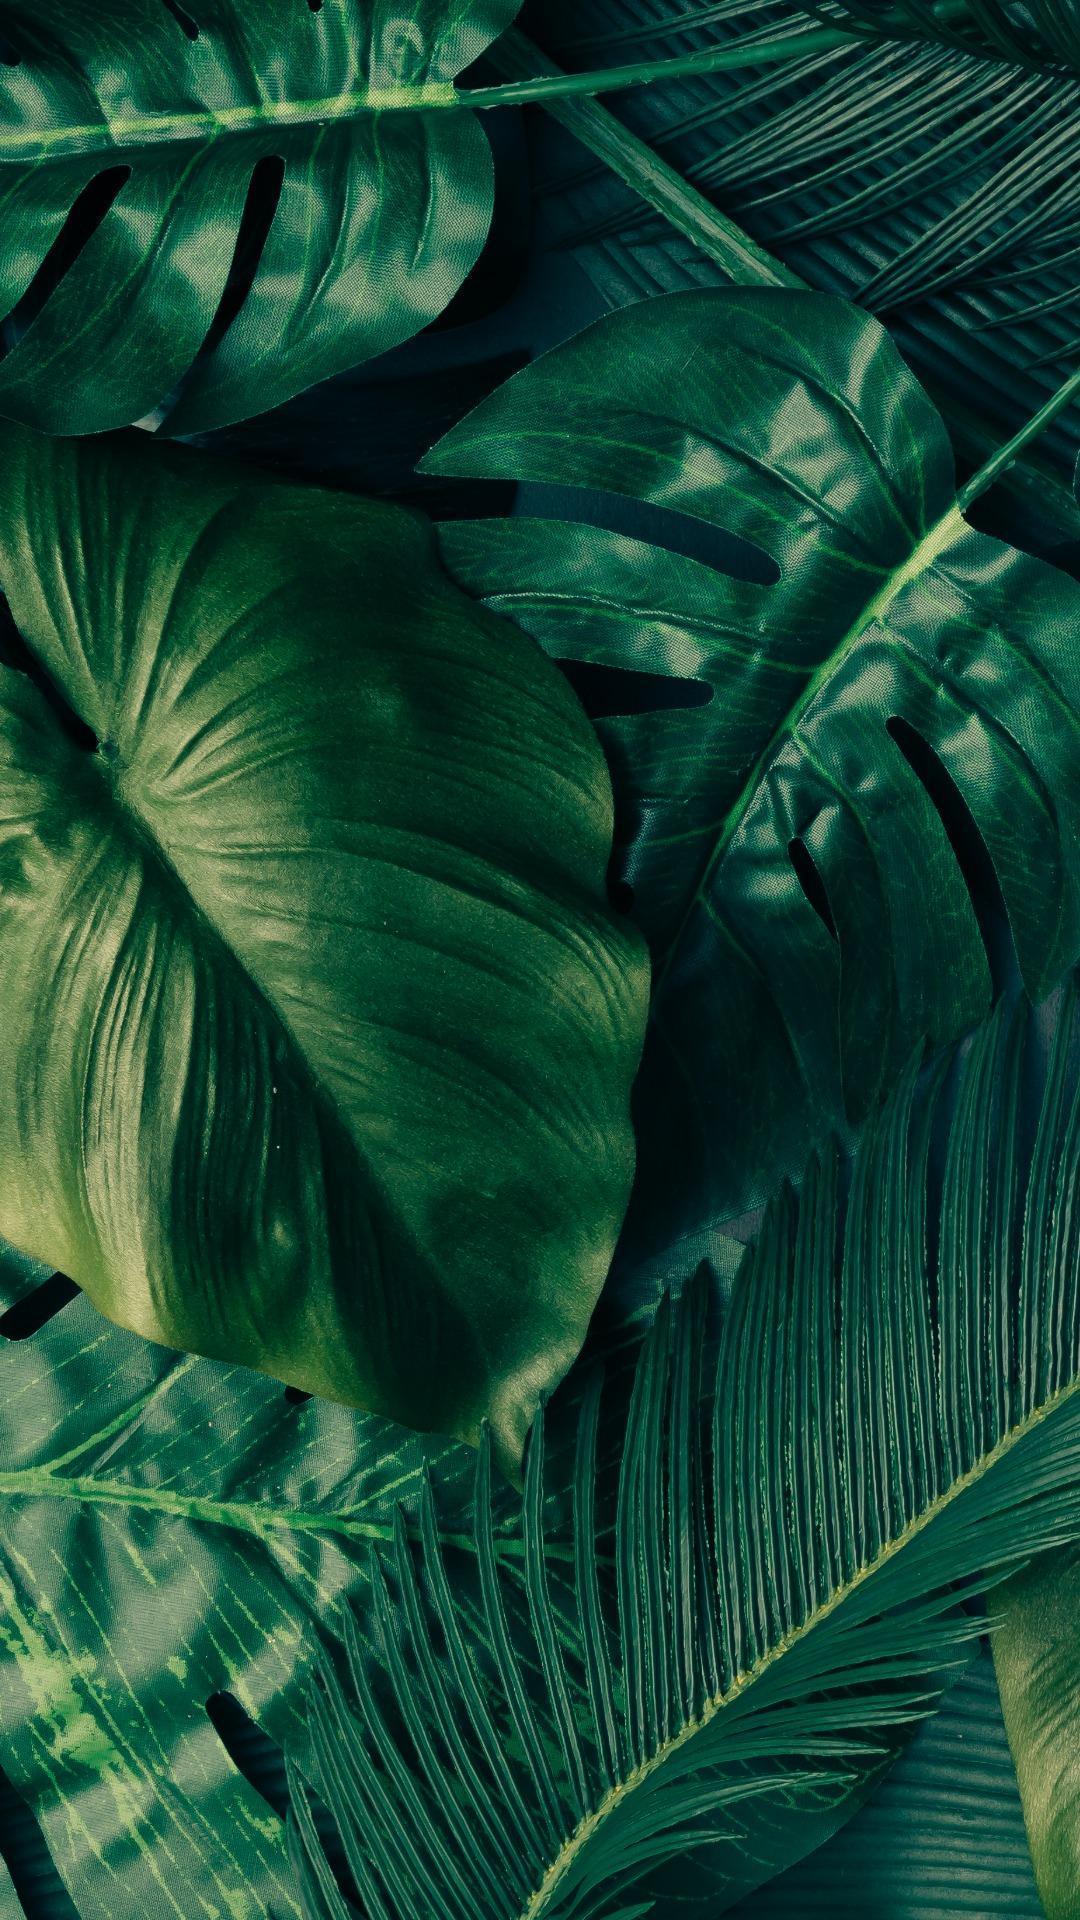 Tropical Leaves Iphone Wallpapers Top Free Tropical Leaves Iphone Backgrounds Wallpaperaccess Looking for the best aesthetic wallpapers? tropical leaves iphone wallpapers top